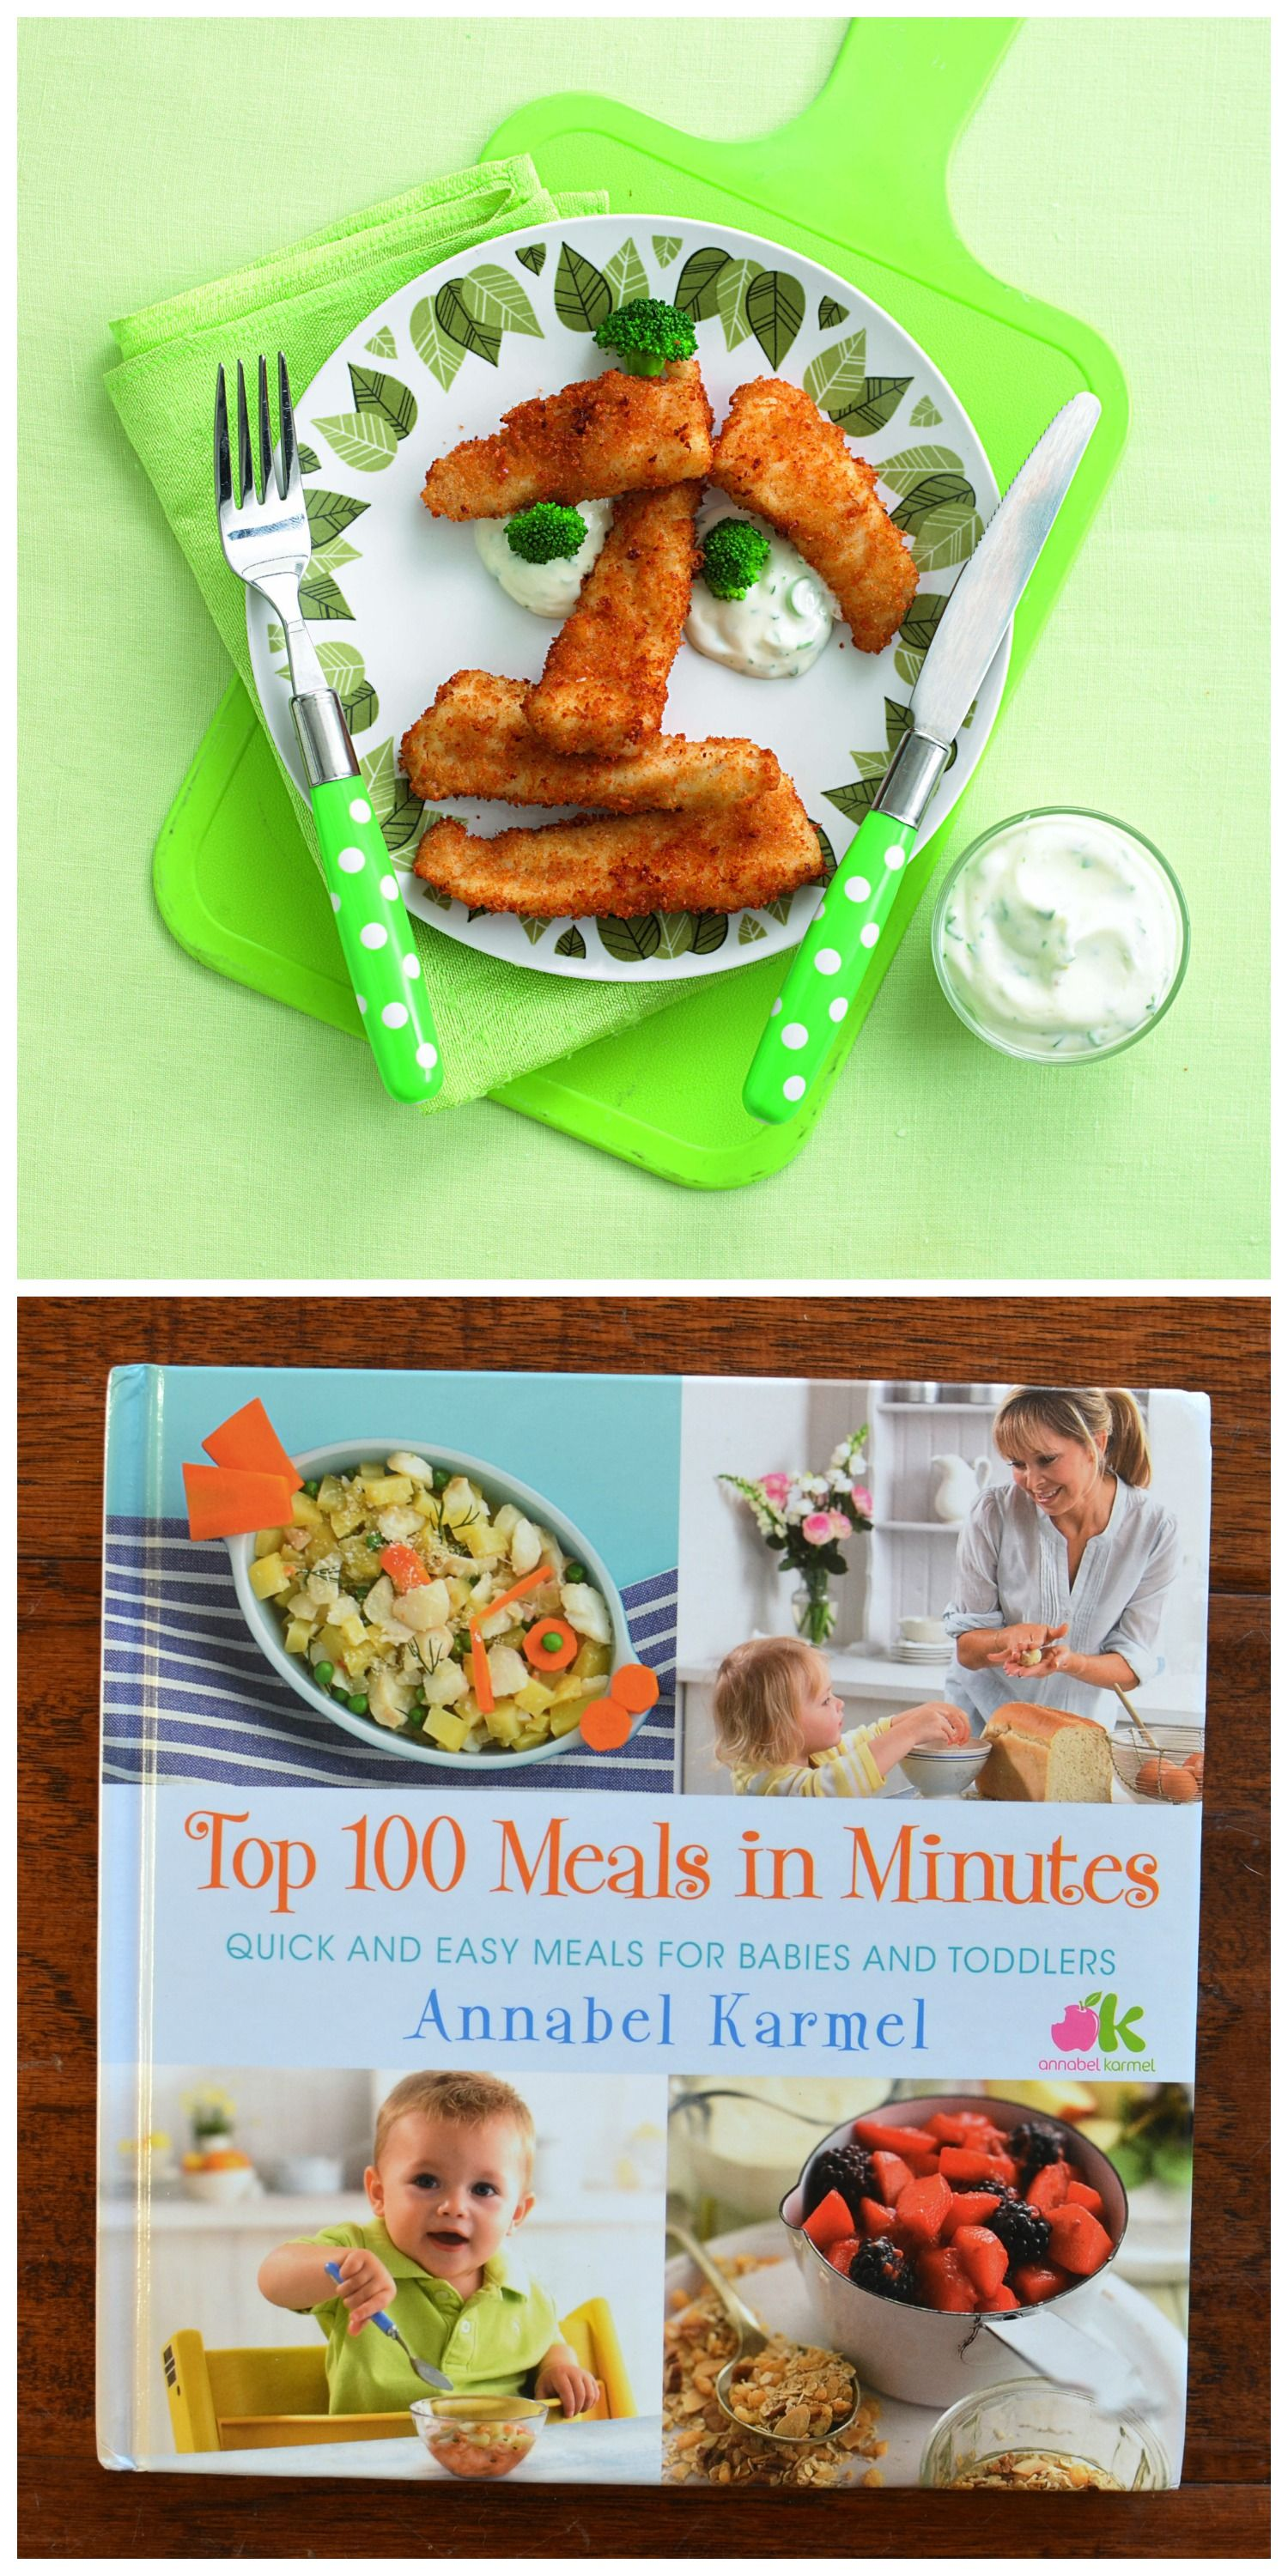 Homemade fish sticks from annabel karmels book meals in minutes from annabel karmels book meals in minutes forumfinder Image collections